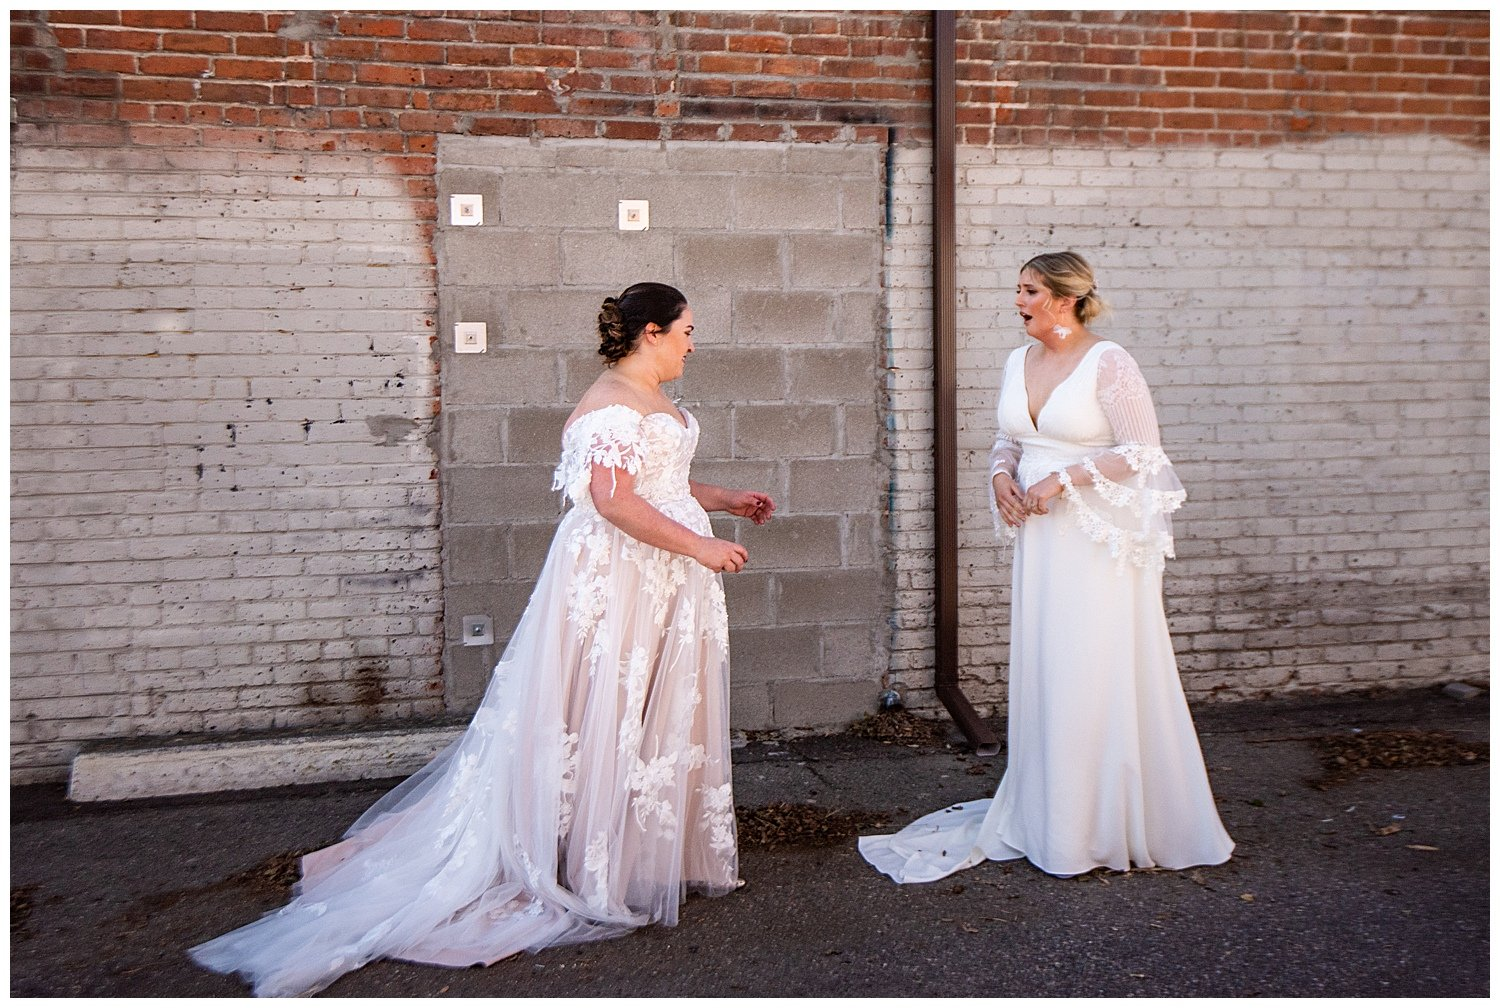 colorful wedding theme lgbtq photographer denver